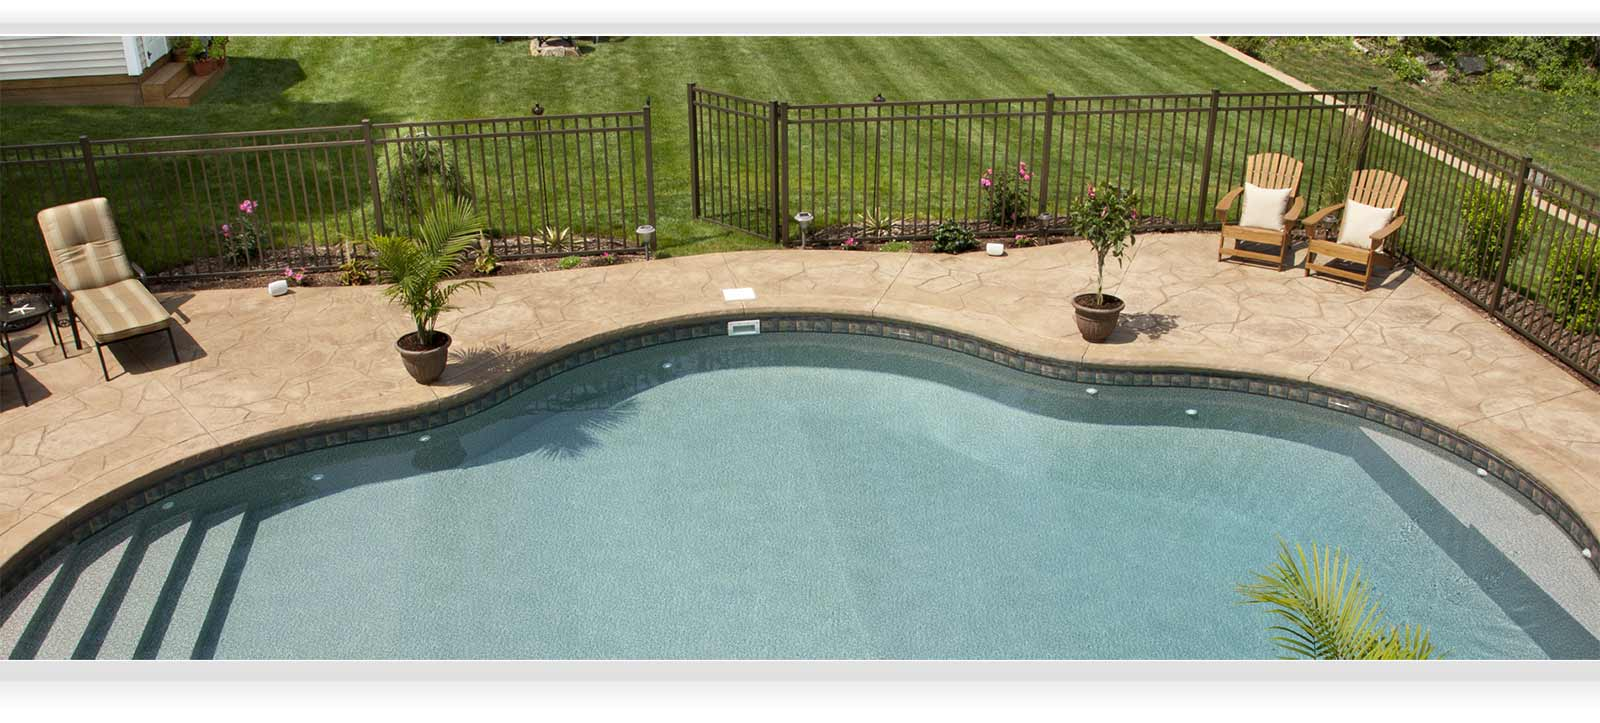 Pool Fencing Inspection